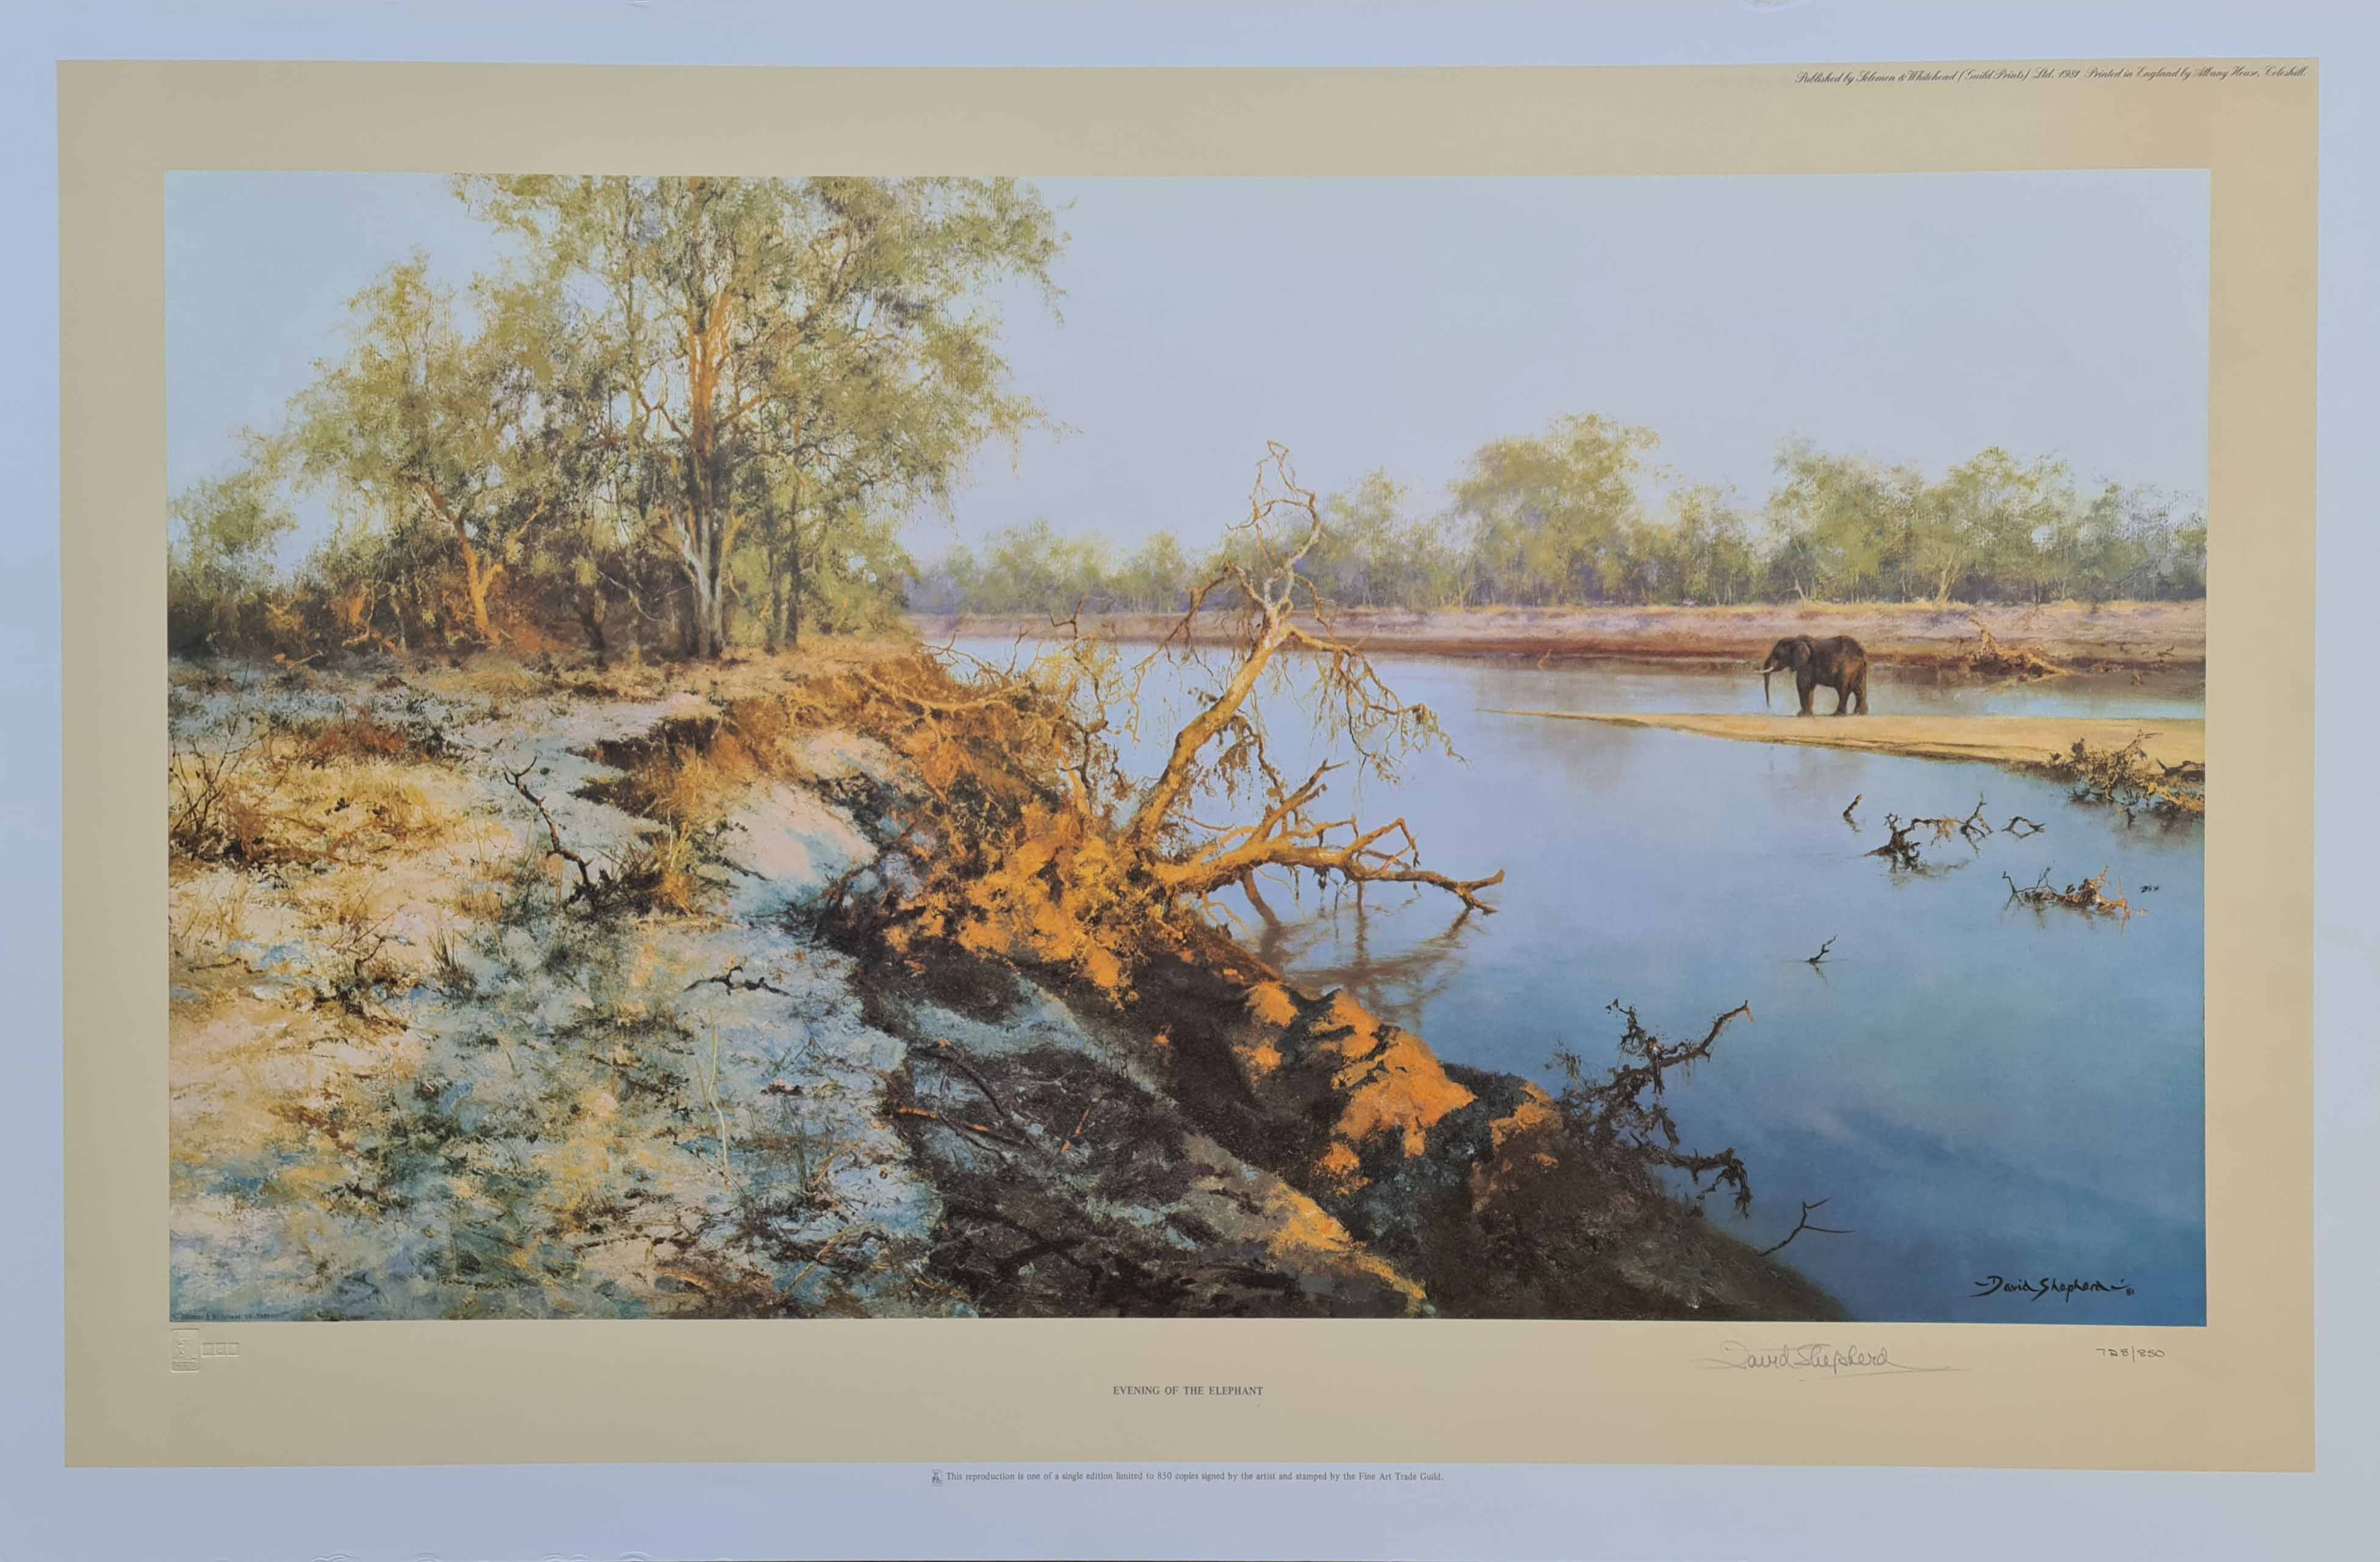 david shepherd eveningoftheelephant print